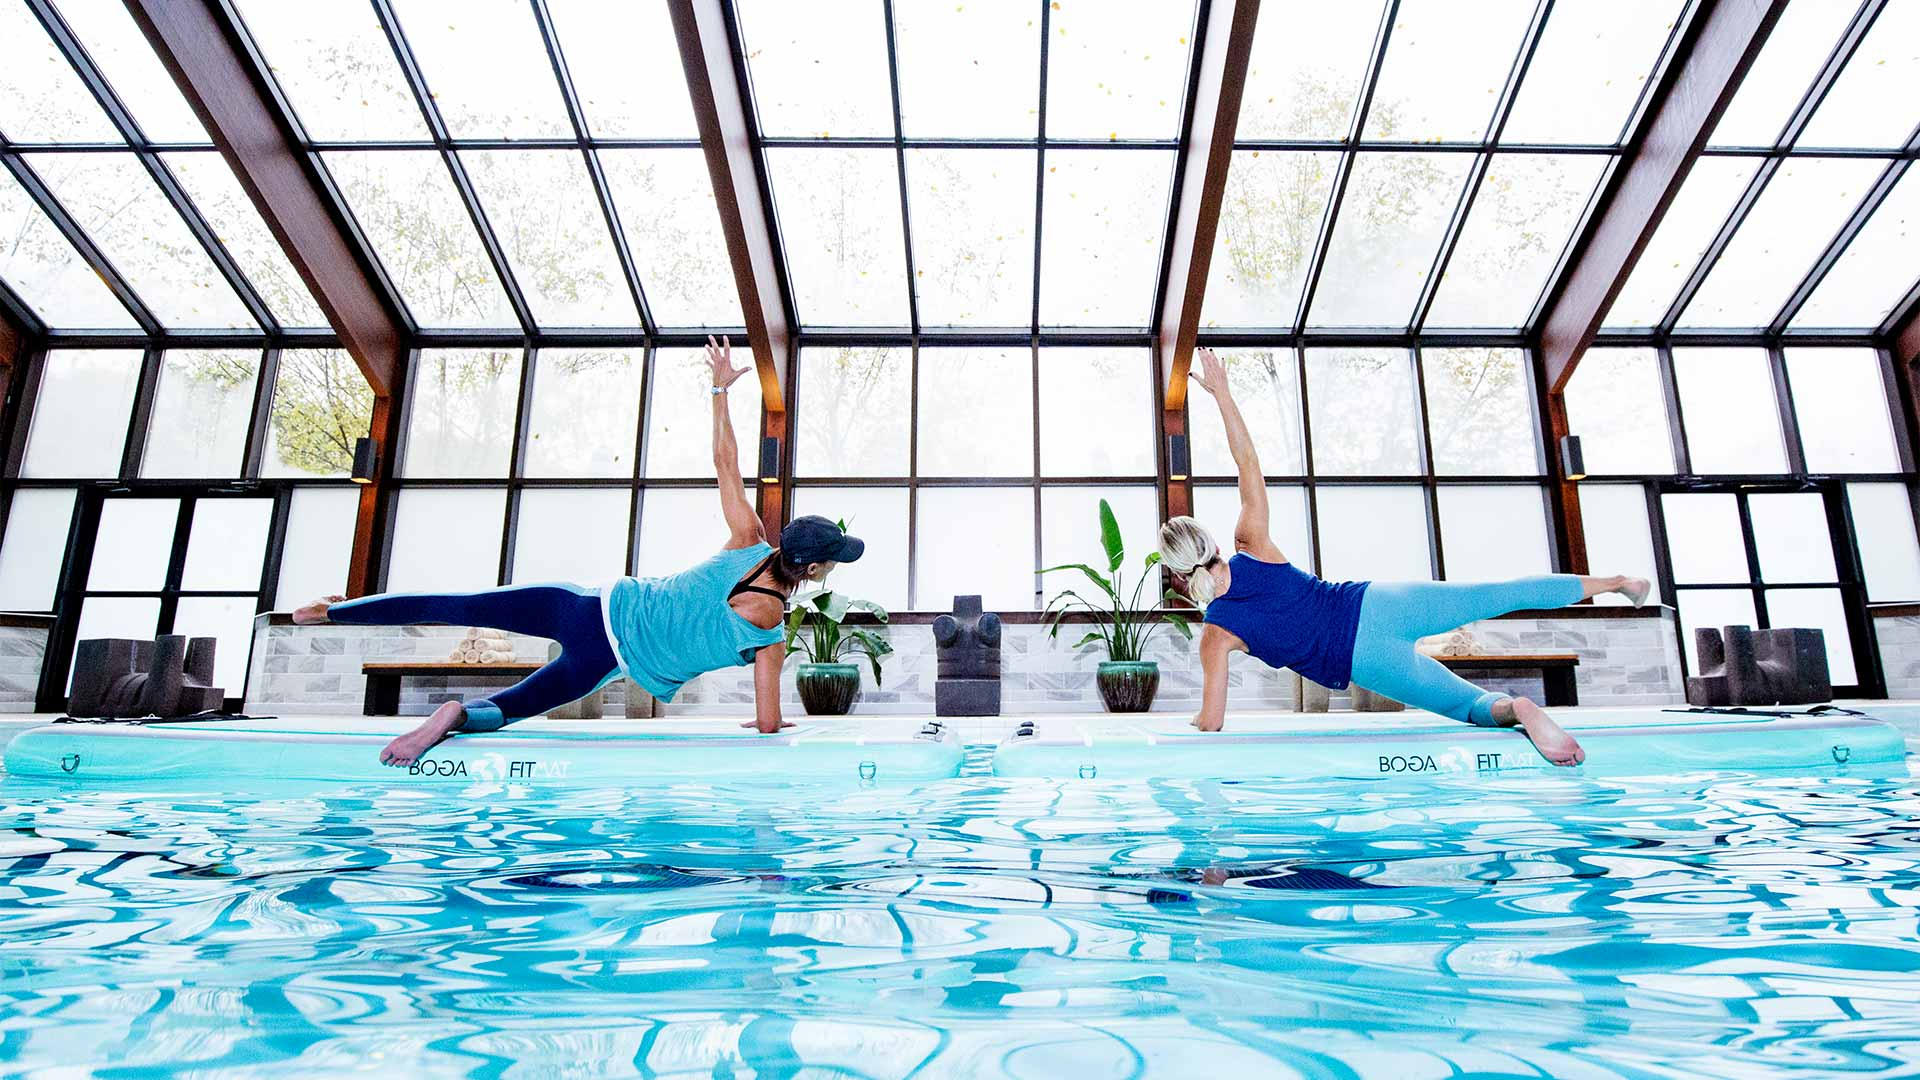 two people is blue workout gear are doing side planks at the edge of a pool